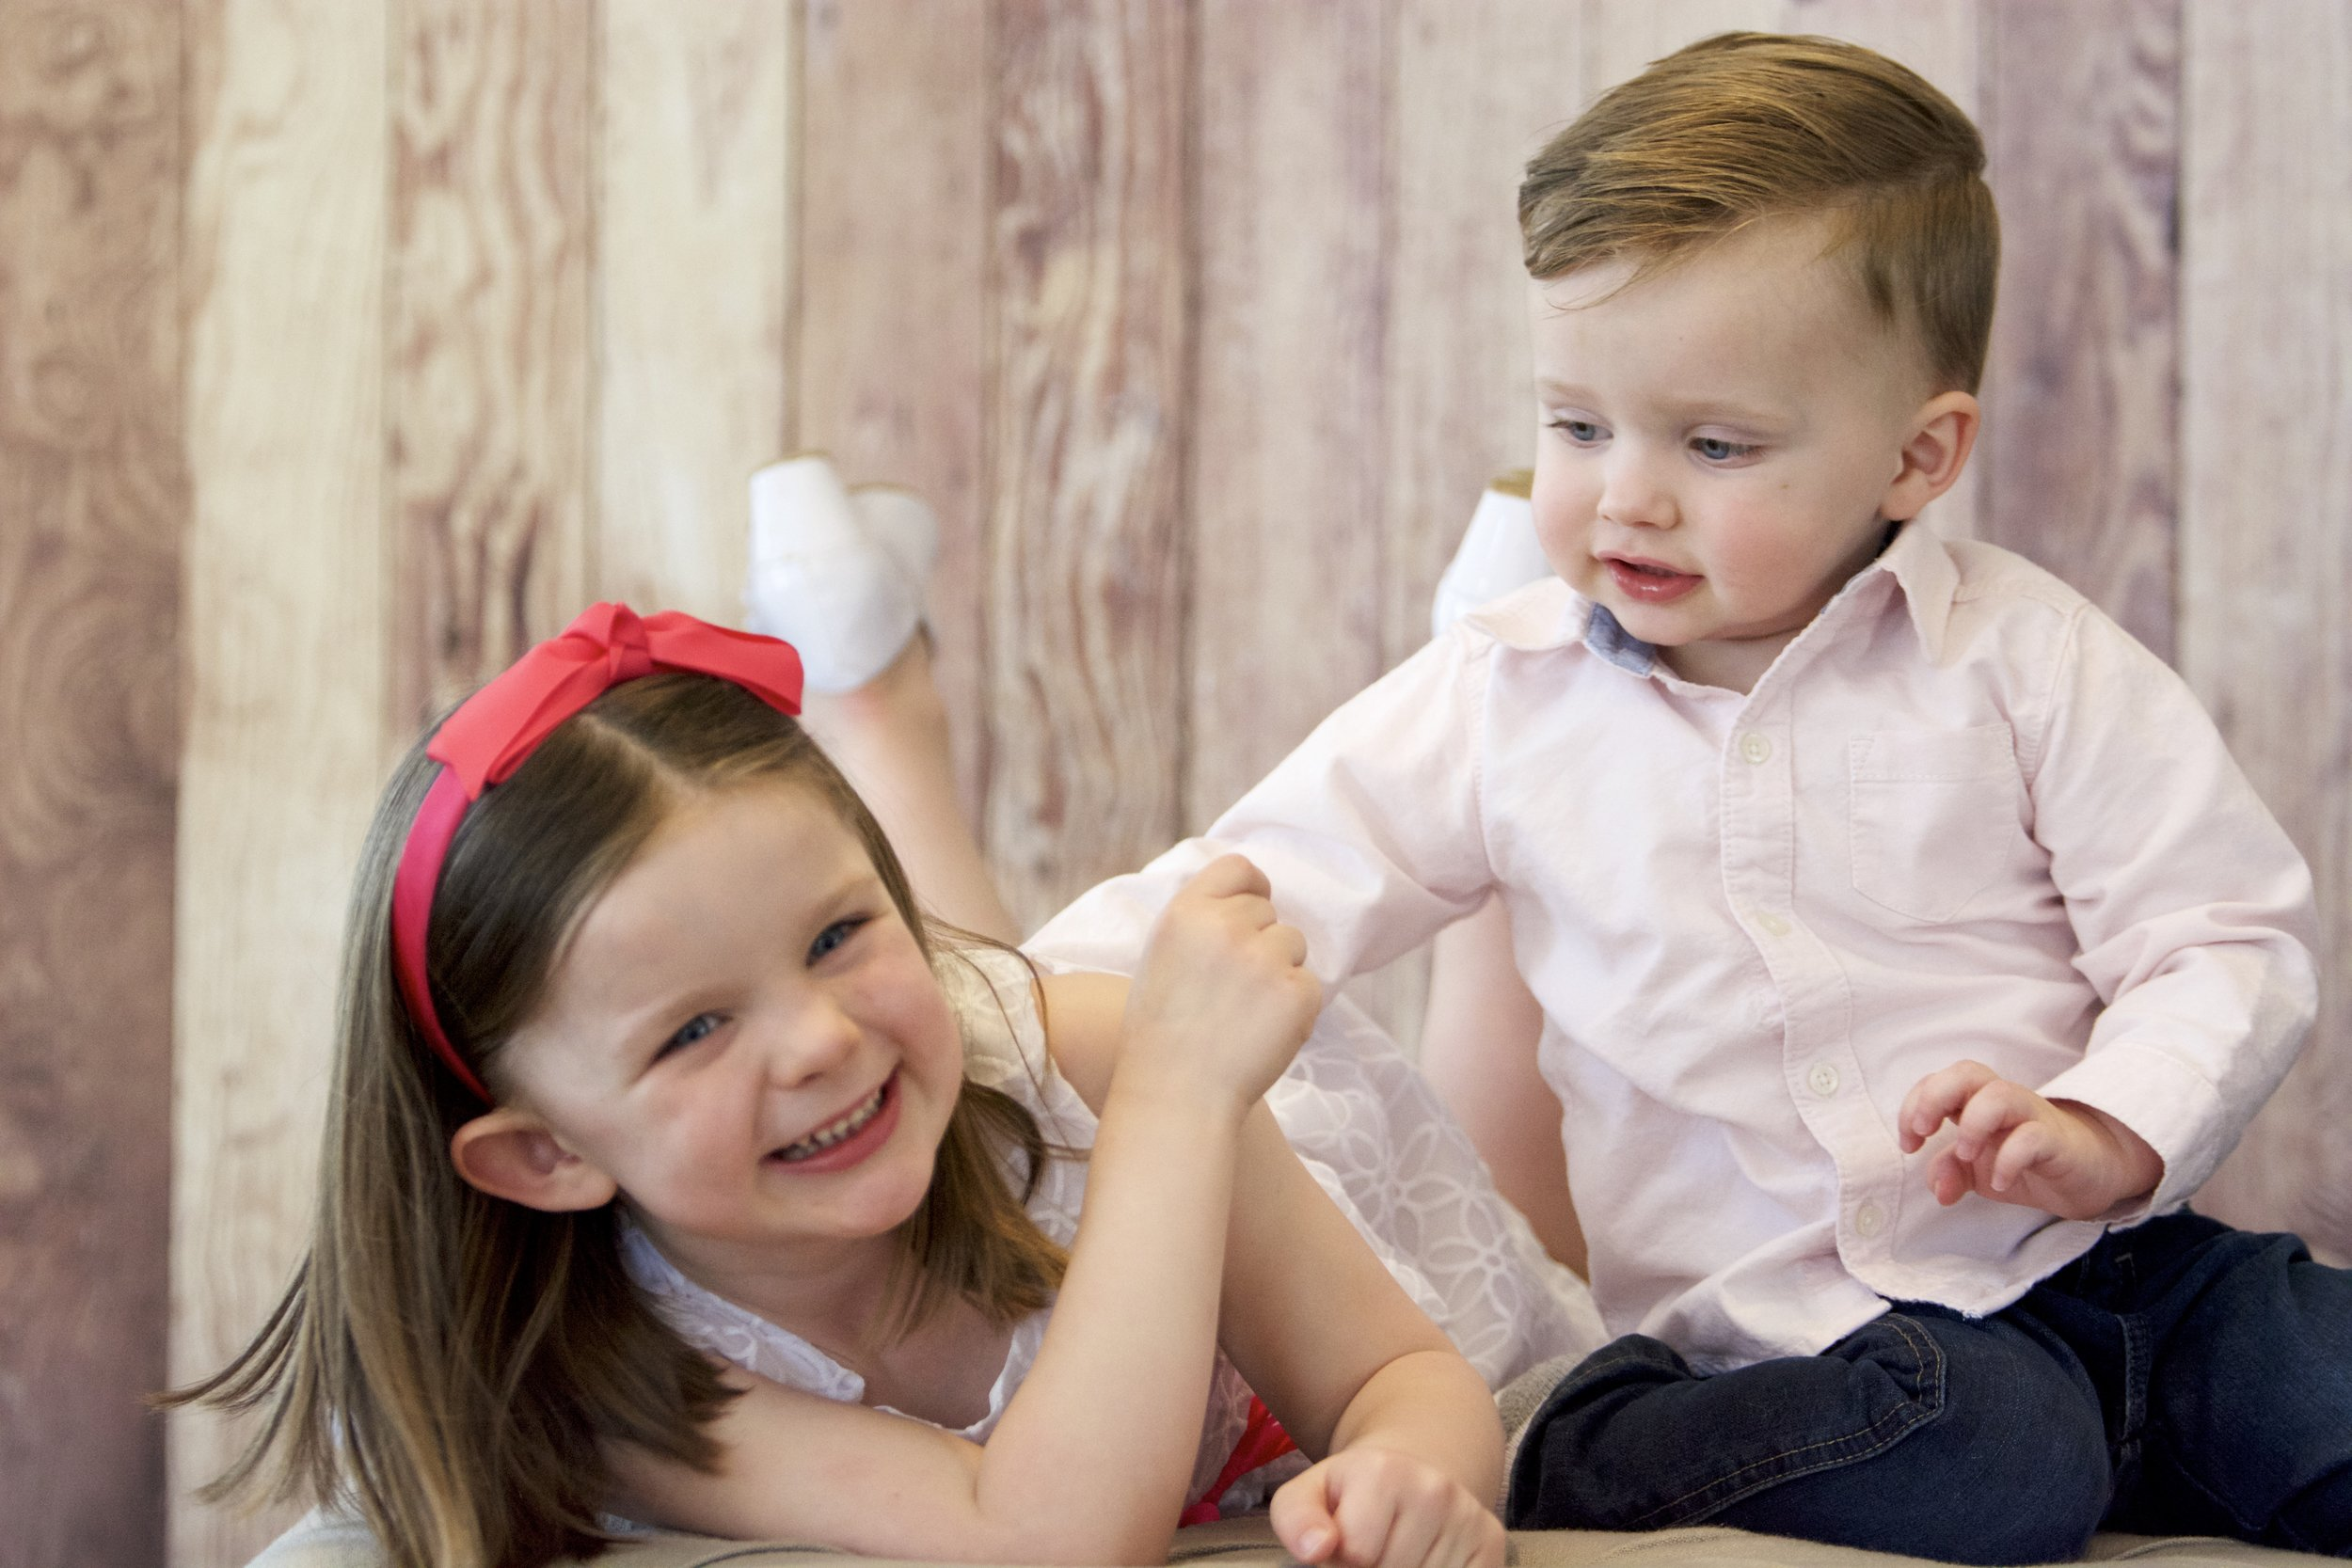 Amber Elizabeth took some amazing shots for us of just our kiddos in her beautiful Powell Studio